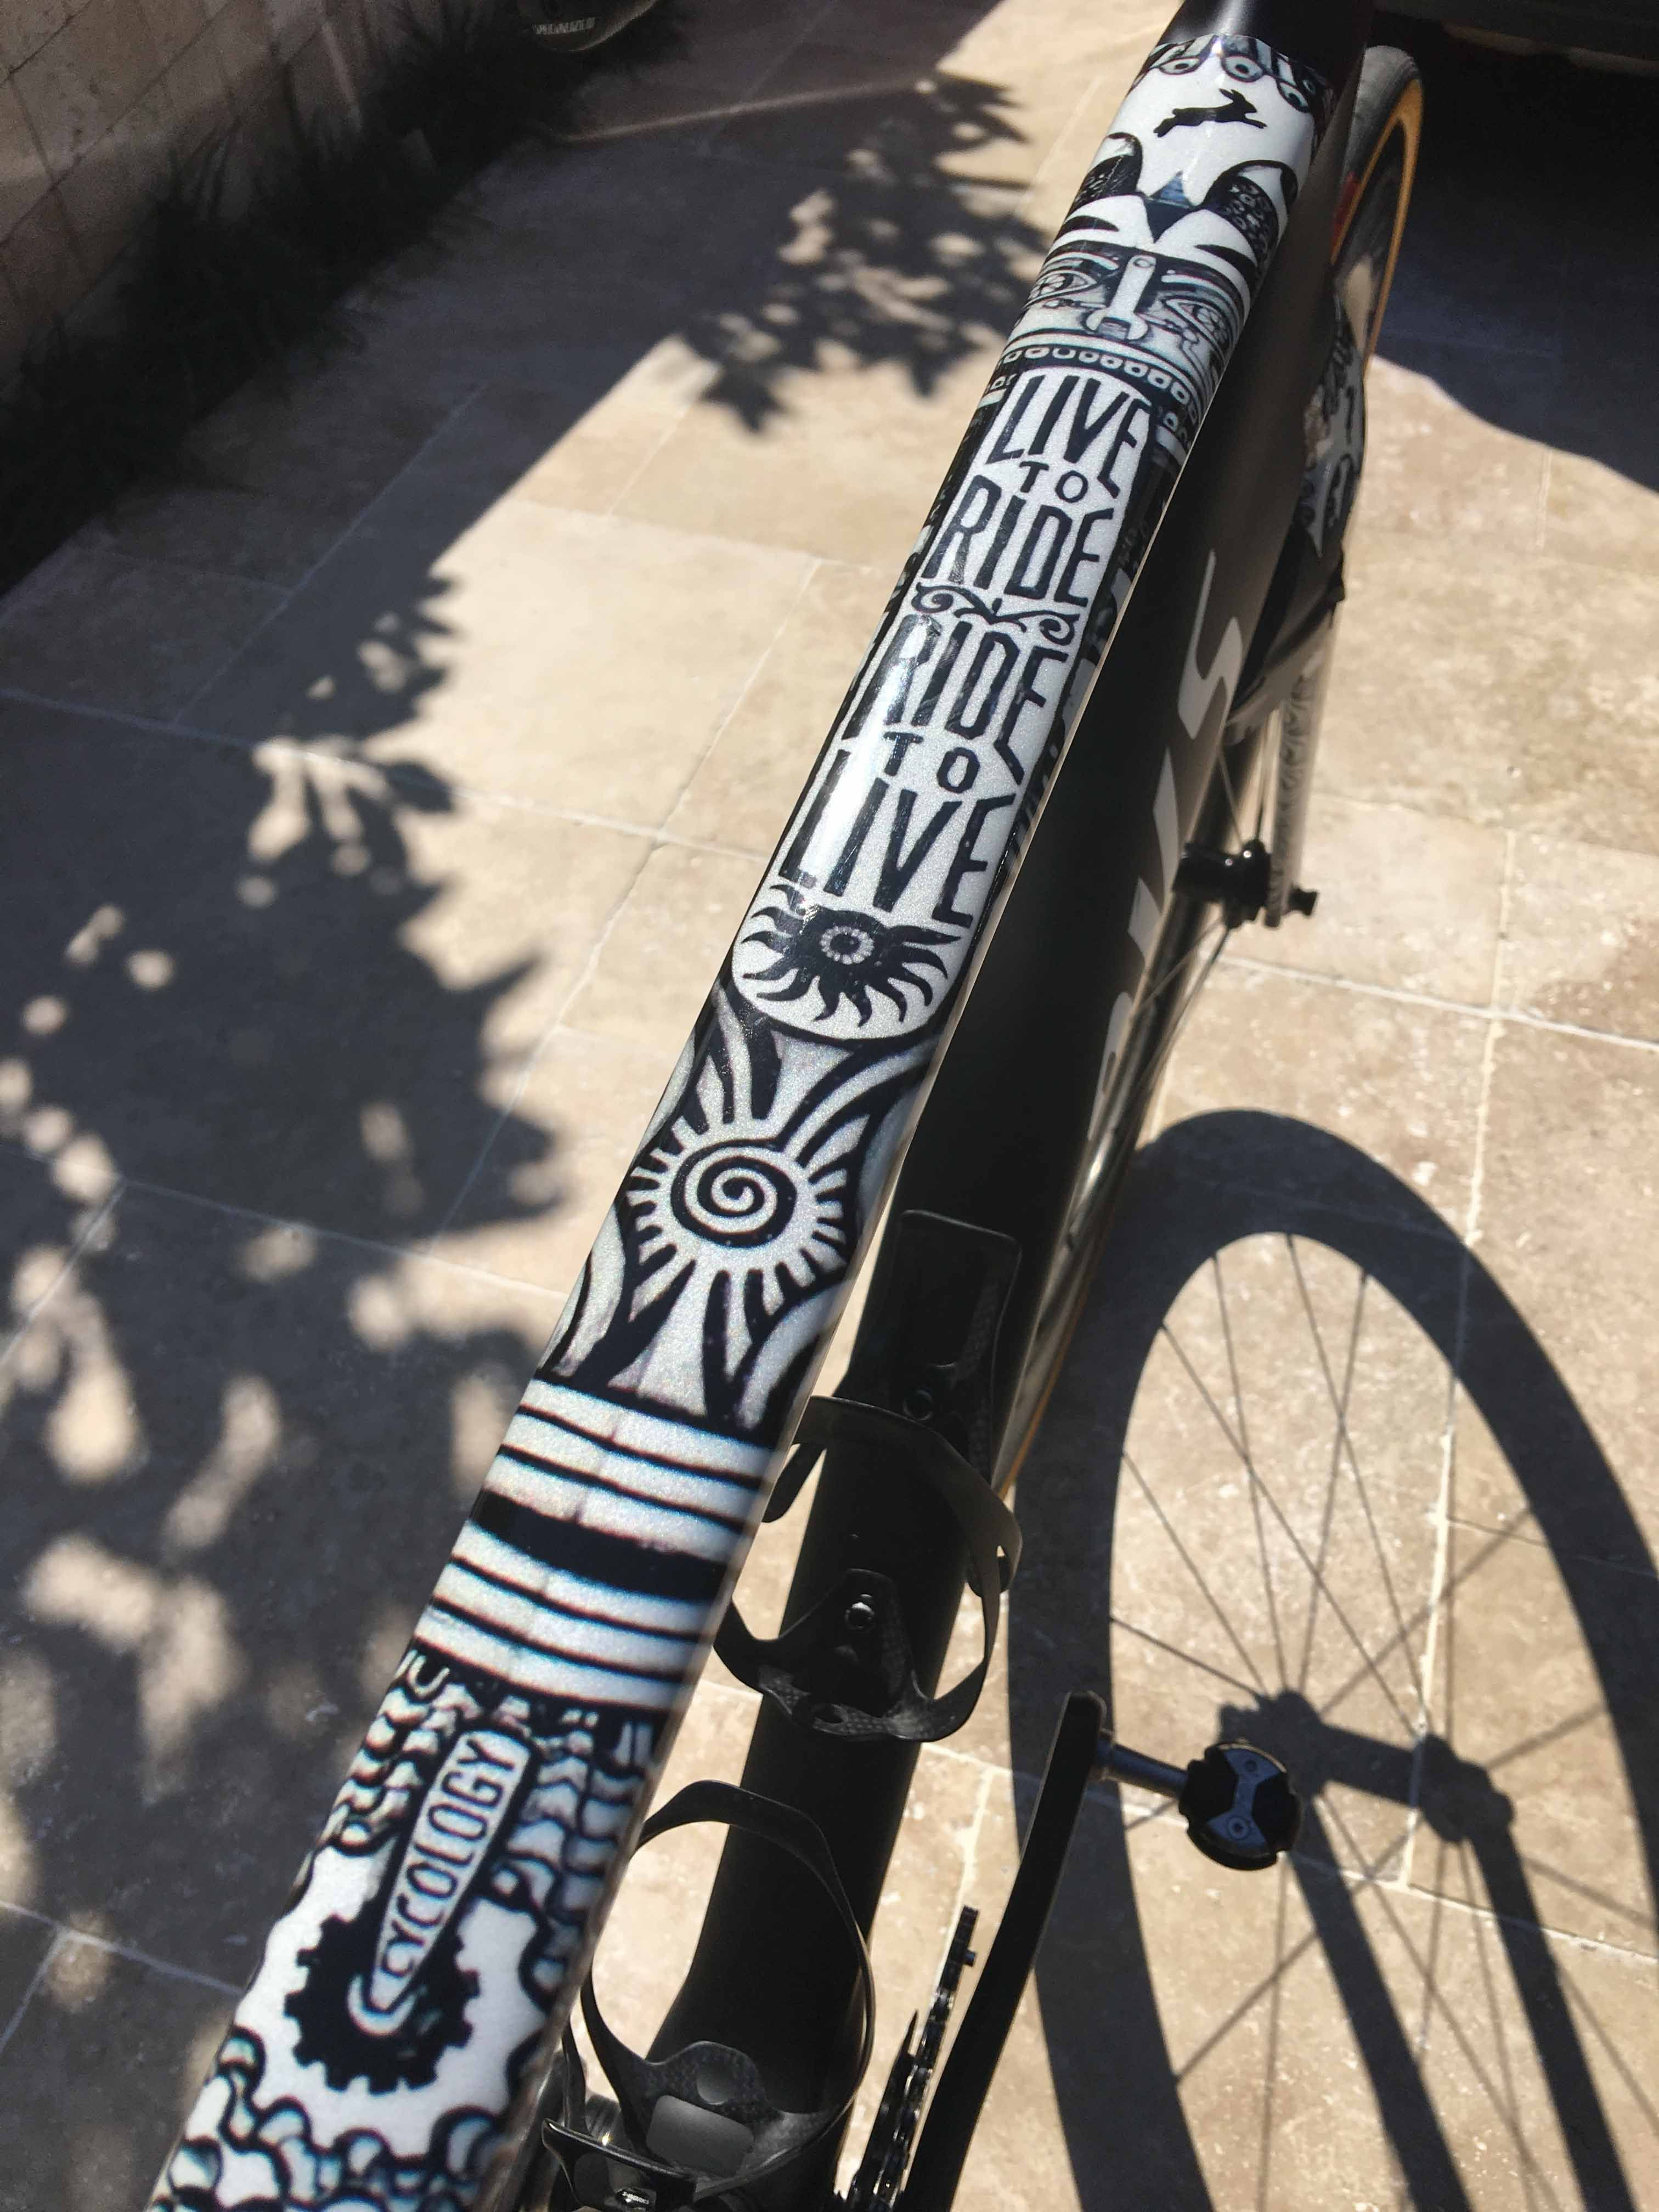 Graffiti Bicycle Frames